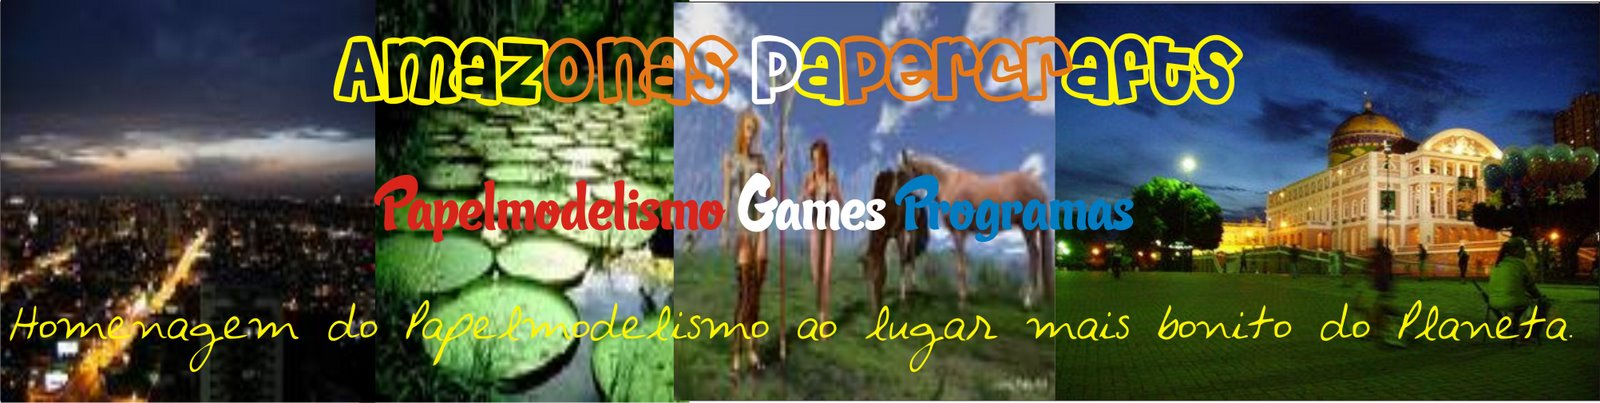 Amazonas Papercrafts